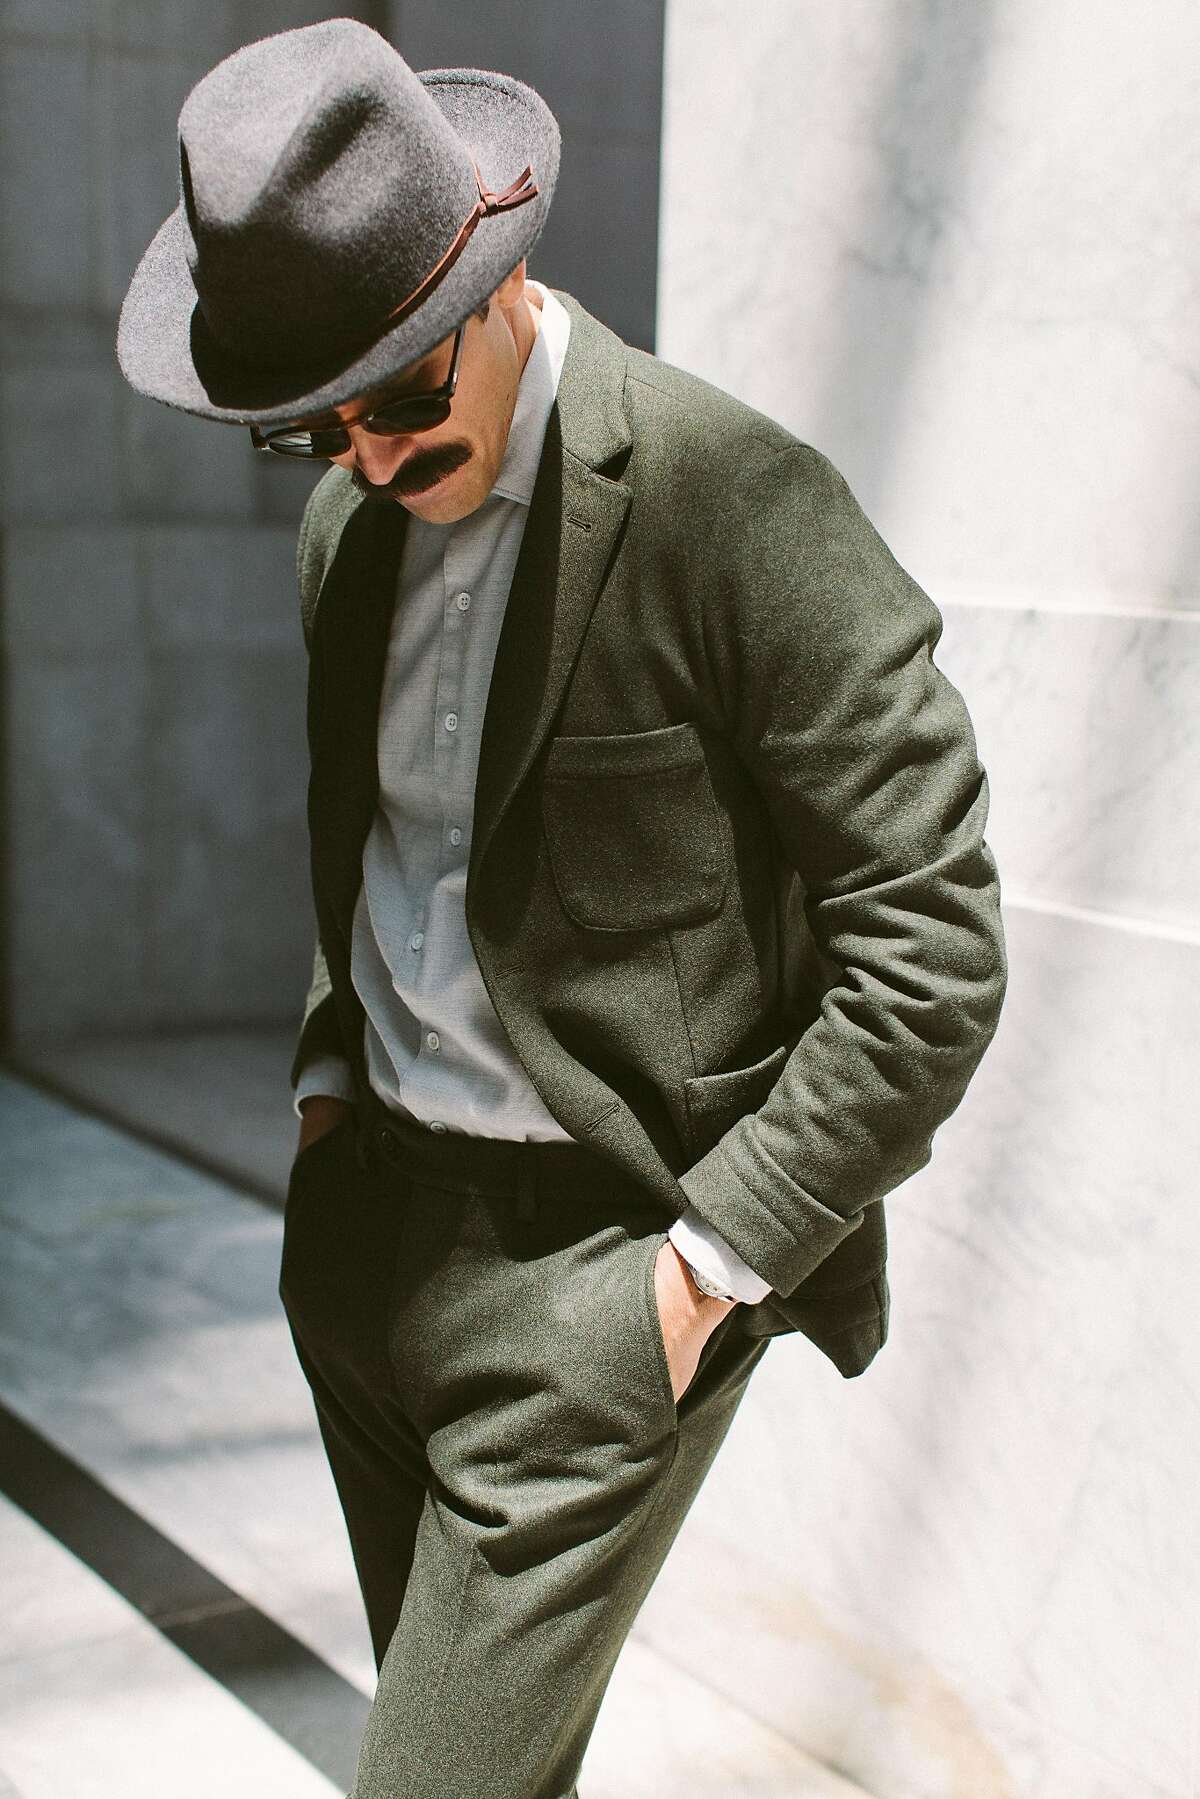 The Telegraph Suit is one of San Francisco company Taylor Stitch's crowdsourced designs.